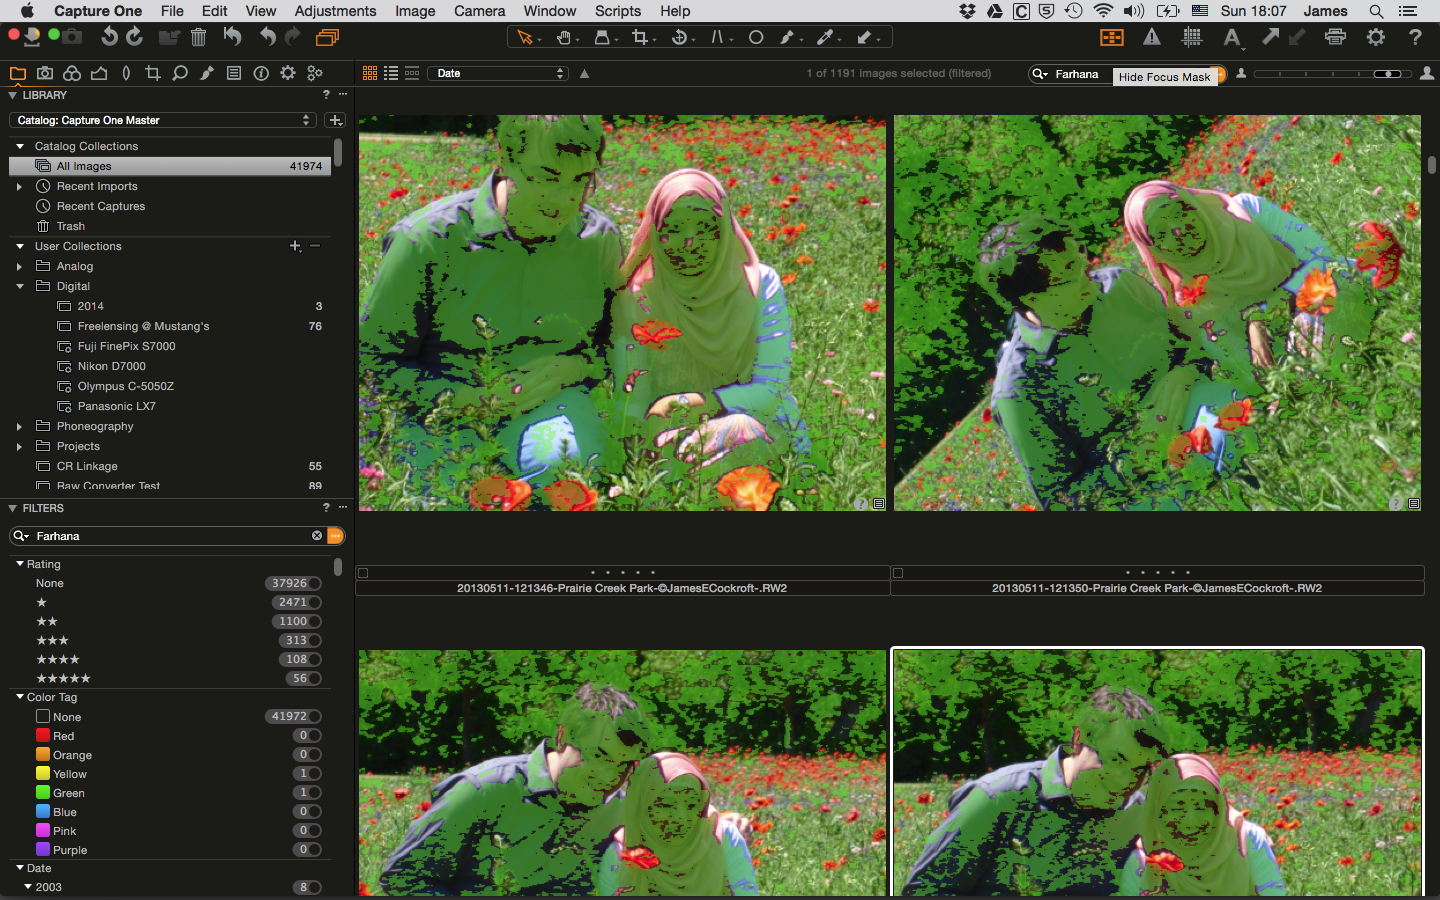 Capture One Focus Mask, in use (1)